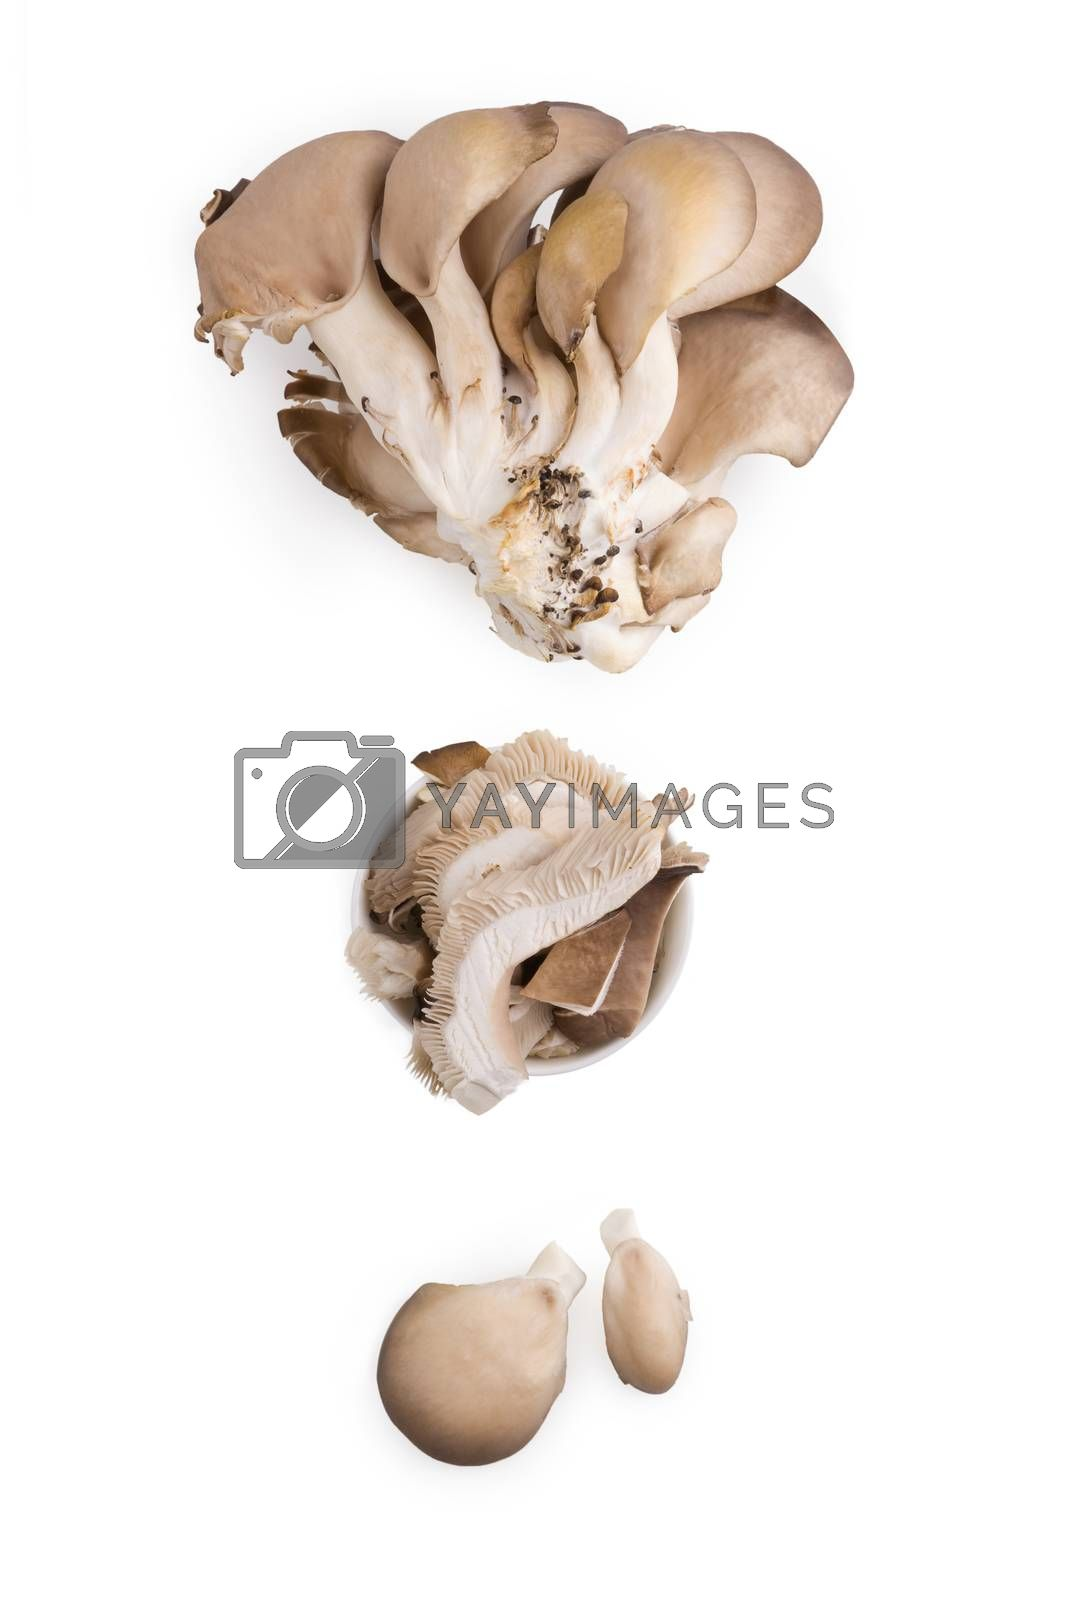 Fresh oyster mushrooms isolated on white background.